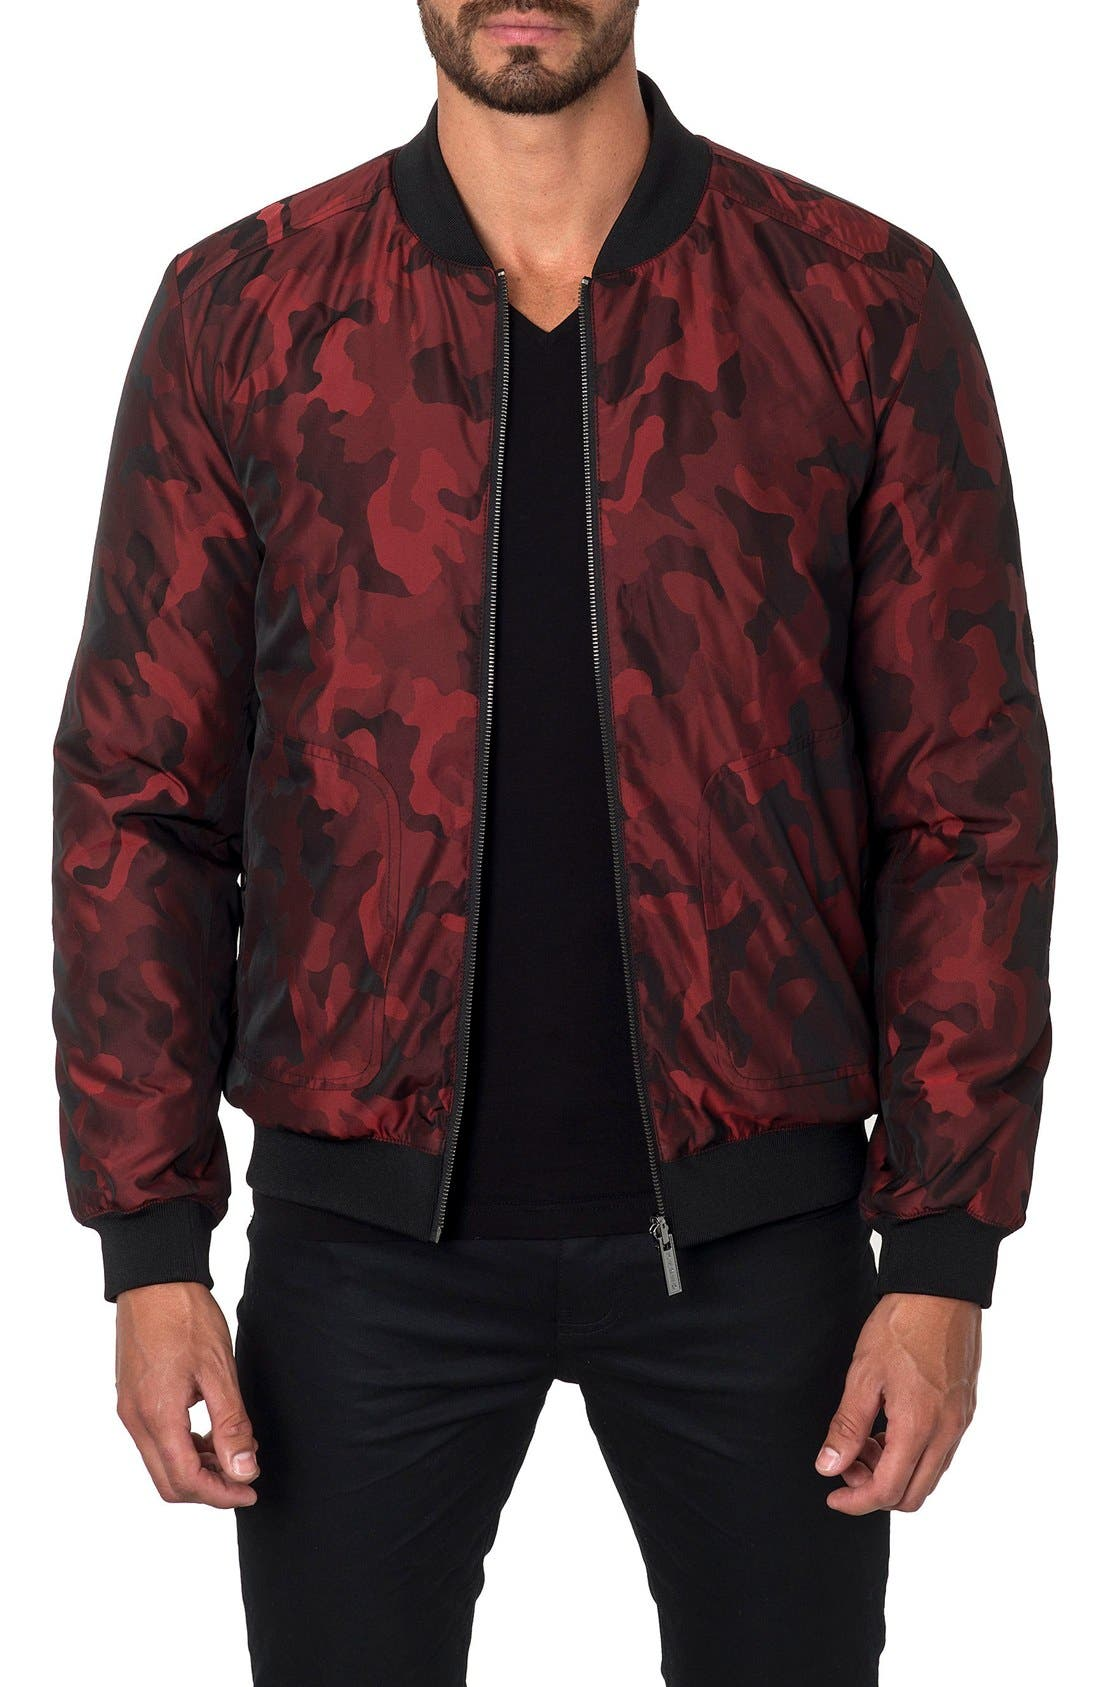 New York Reversible Bomber Jacket,                         Main,                         color, Red Camo/ Black Quilted